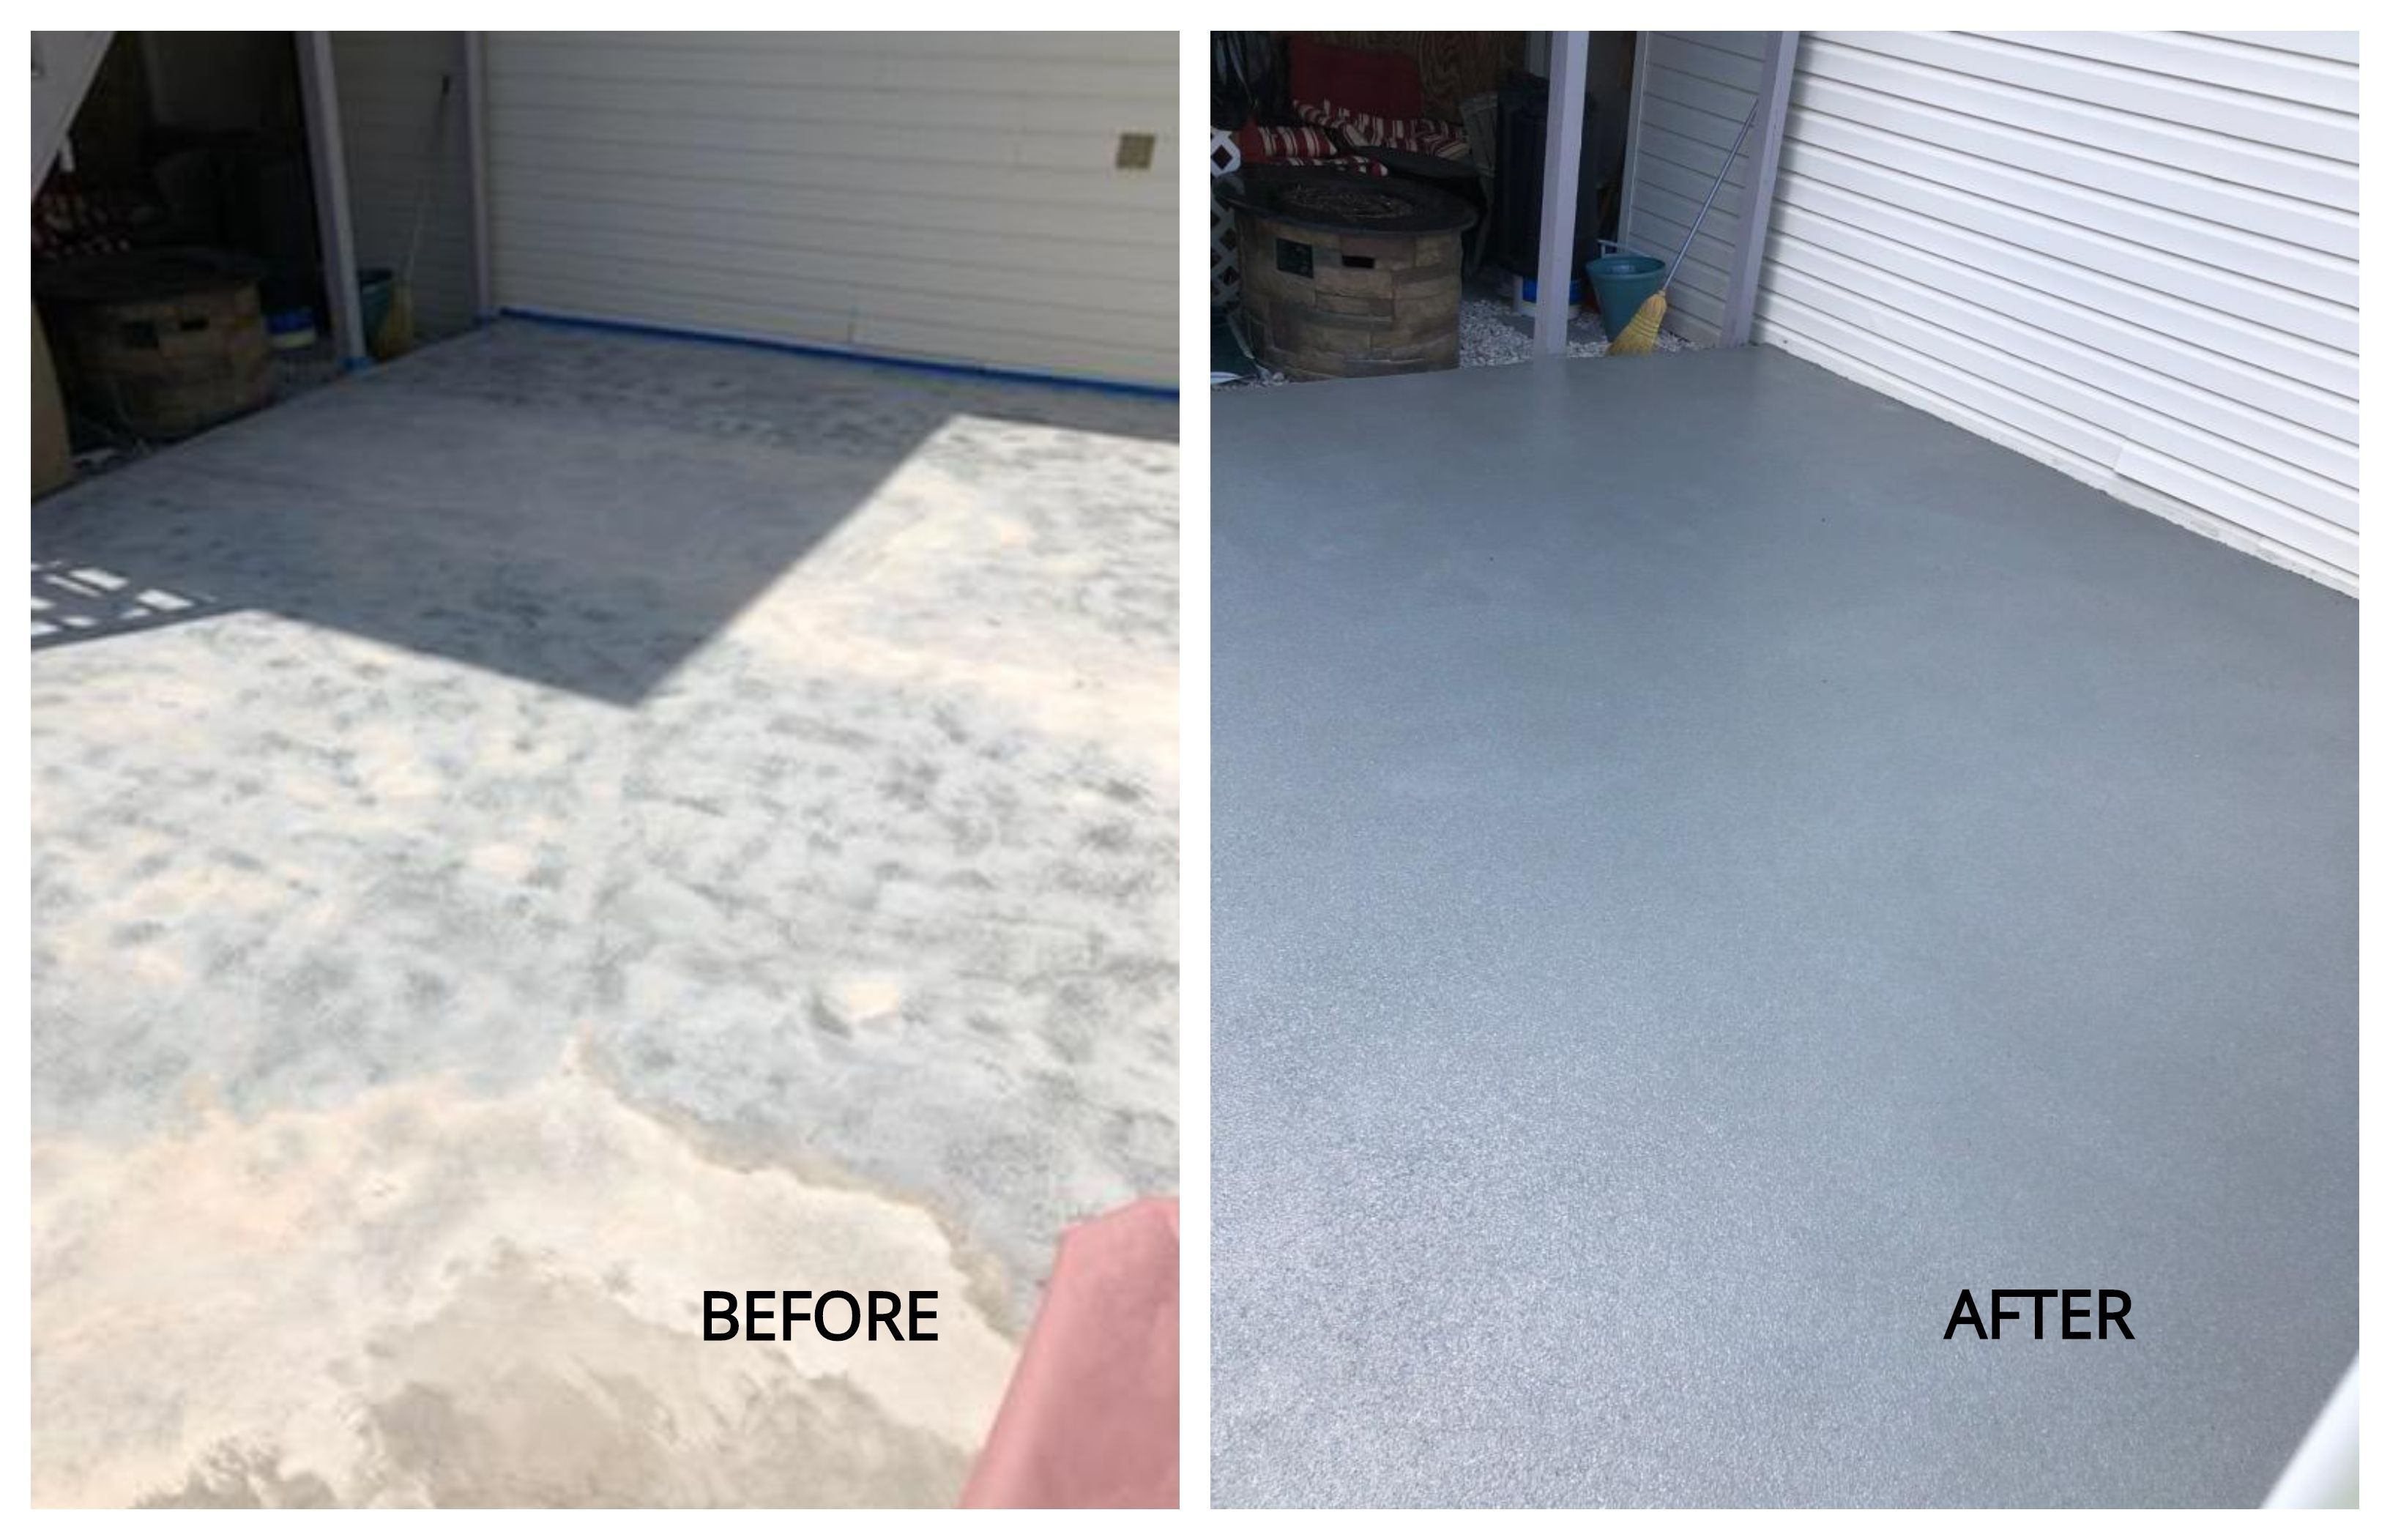 Wow Epoxy Your Concrete Deck Porch Patio Garage Or Basement Call 717 701 8663 For A Free Estimate Our High Quality Co Concrete Deck Porch Patio Concrete